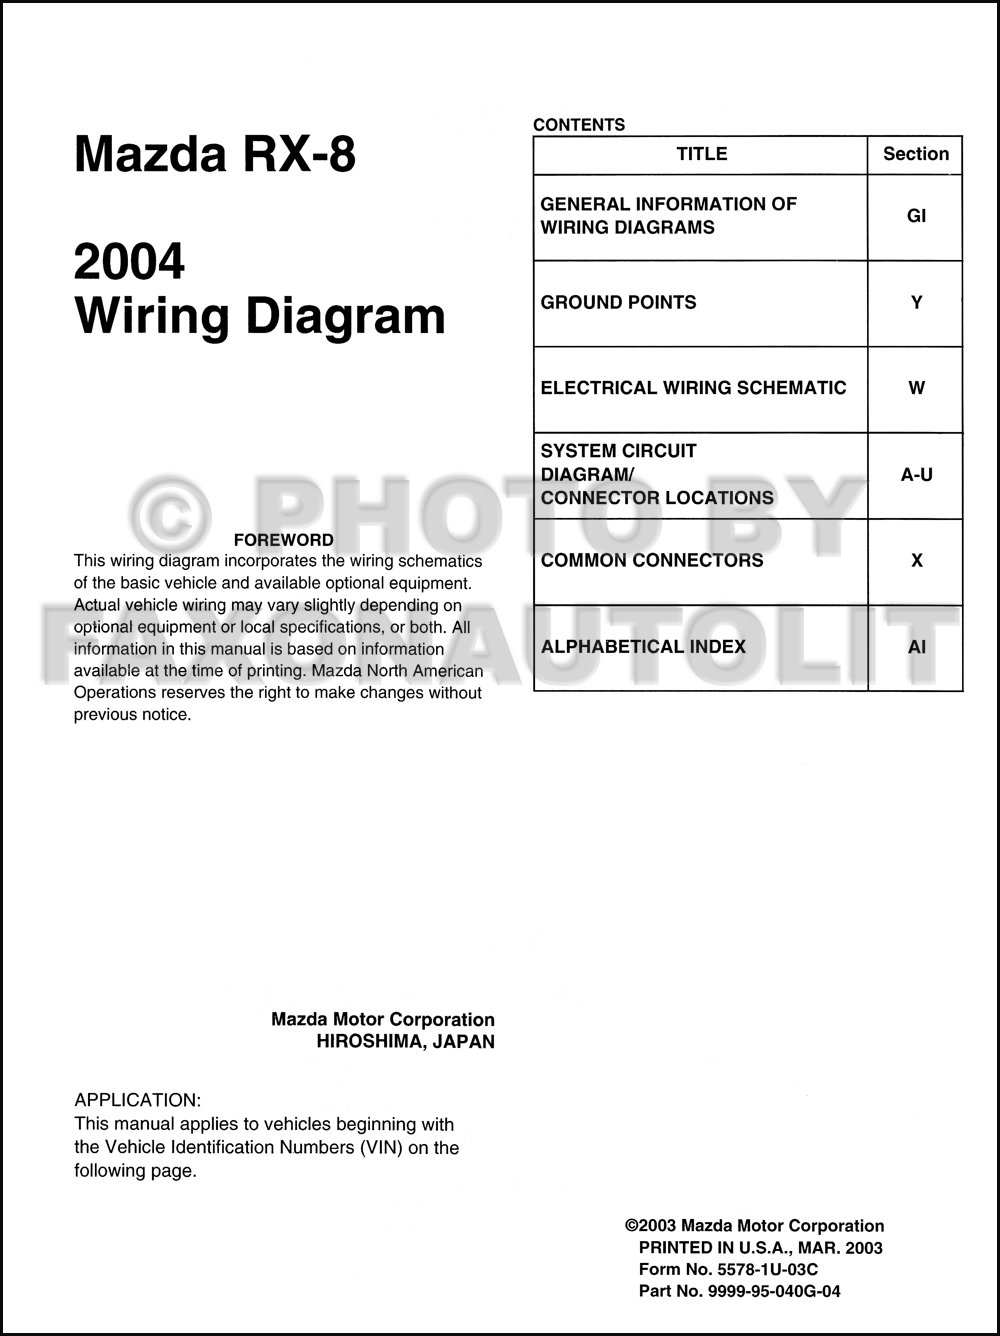 Mazda Rx8 Wiring Diagram Trusted Evo 8 2004 Rx Manual Original Engine Swap